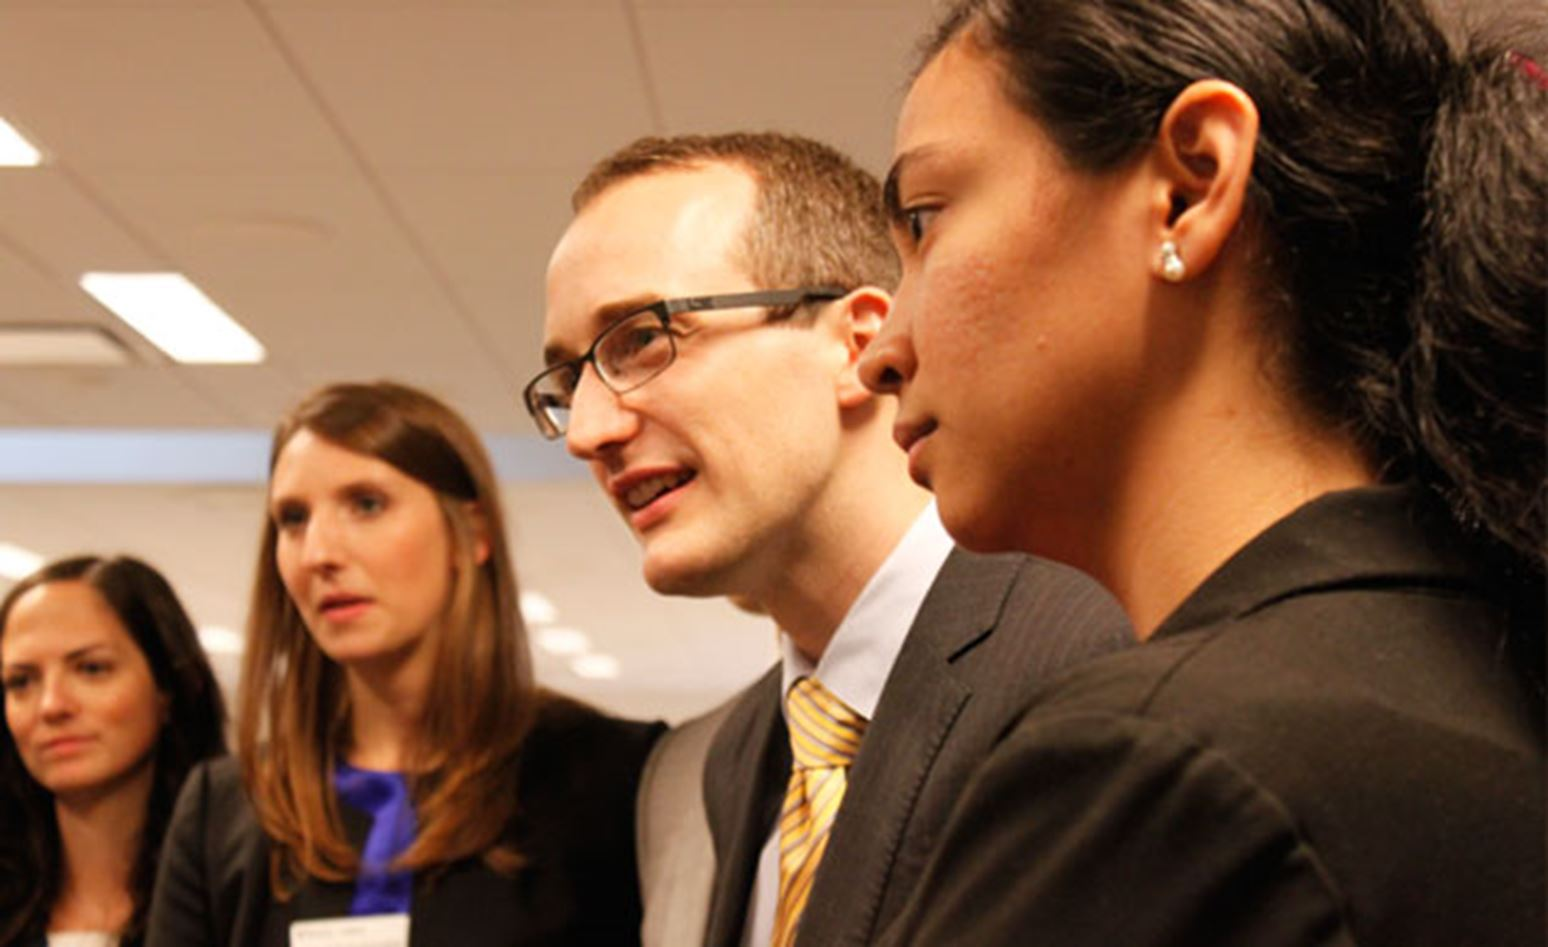 MBA students practice face-to-face networking in a digital world